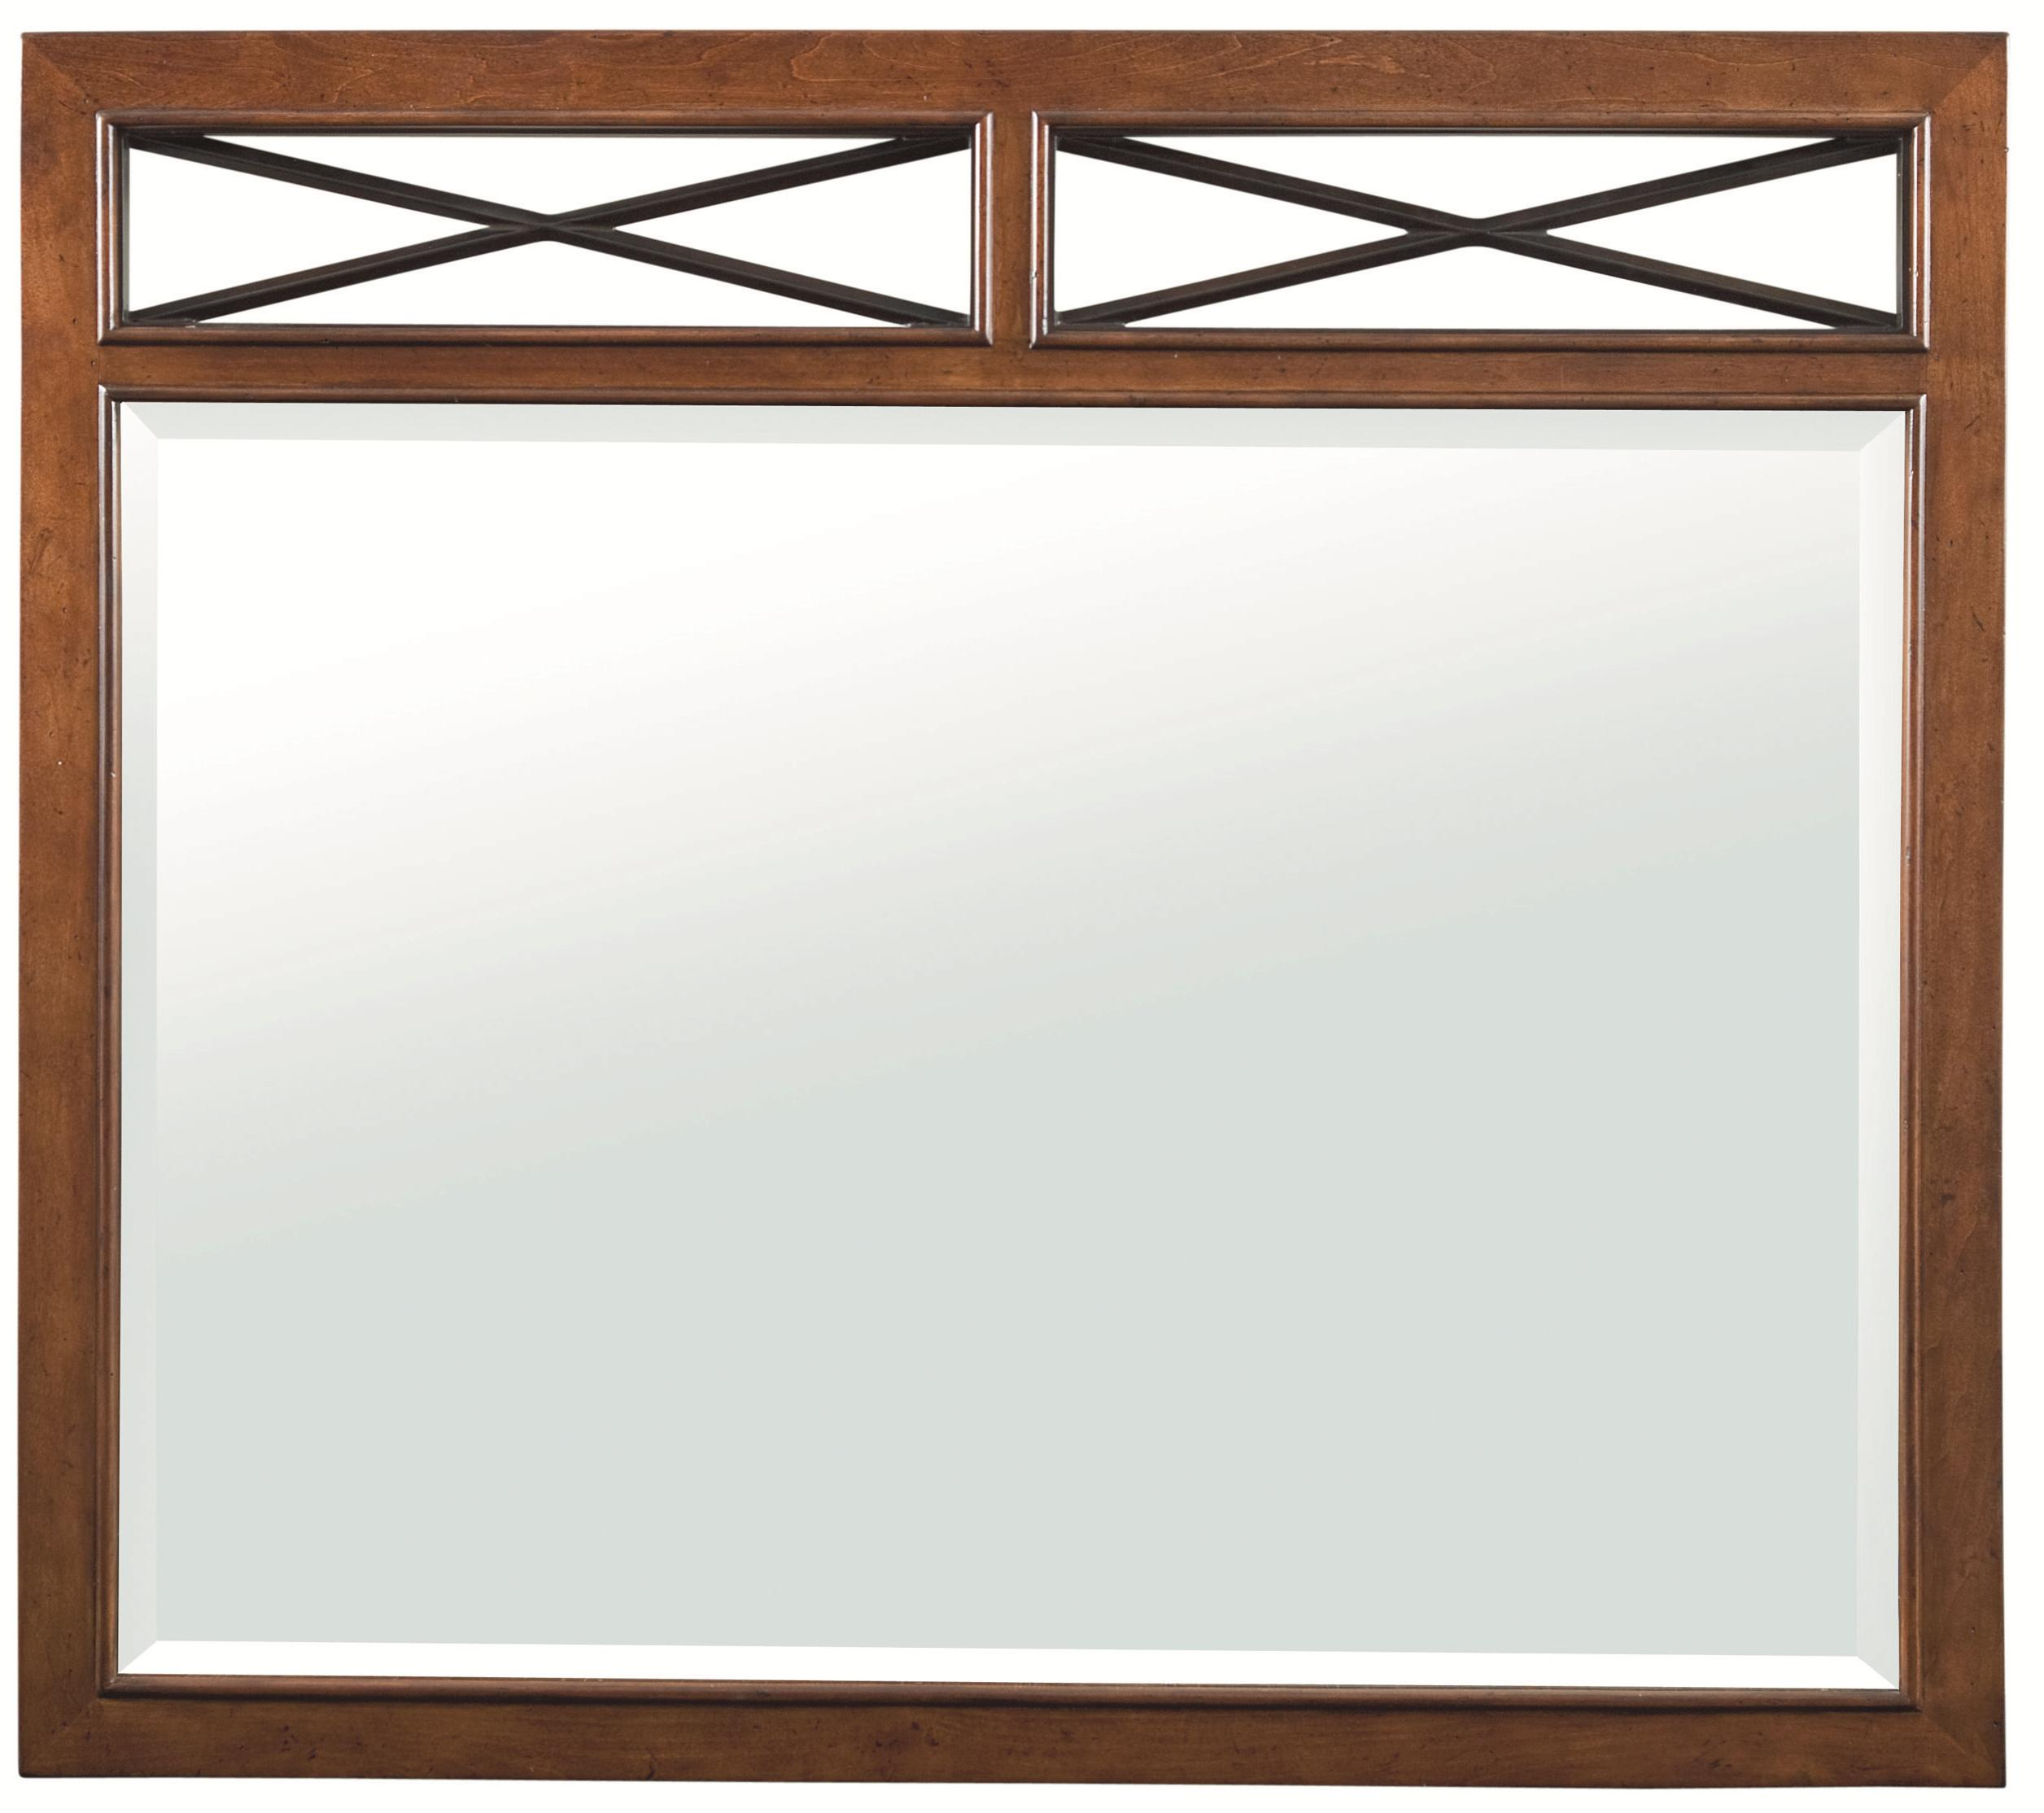 Thomasville® American Anthem Mirror - Item Number: 82811-240